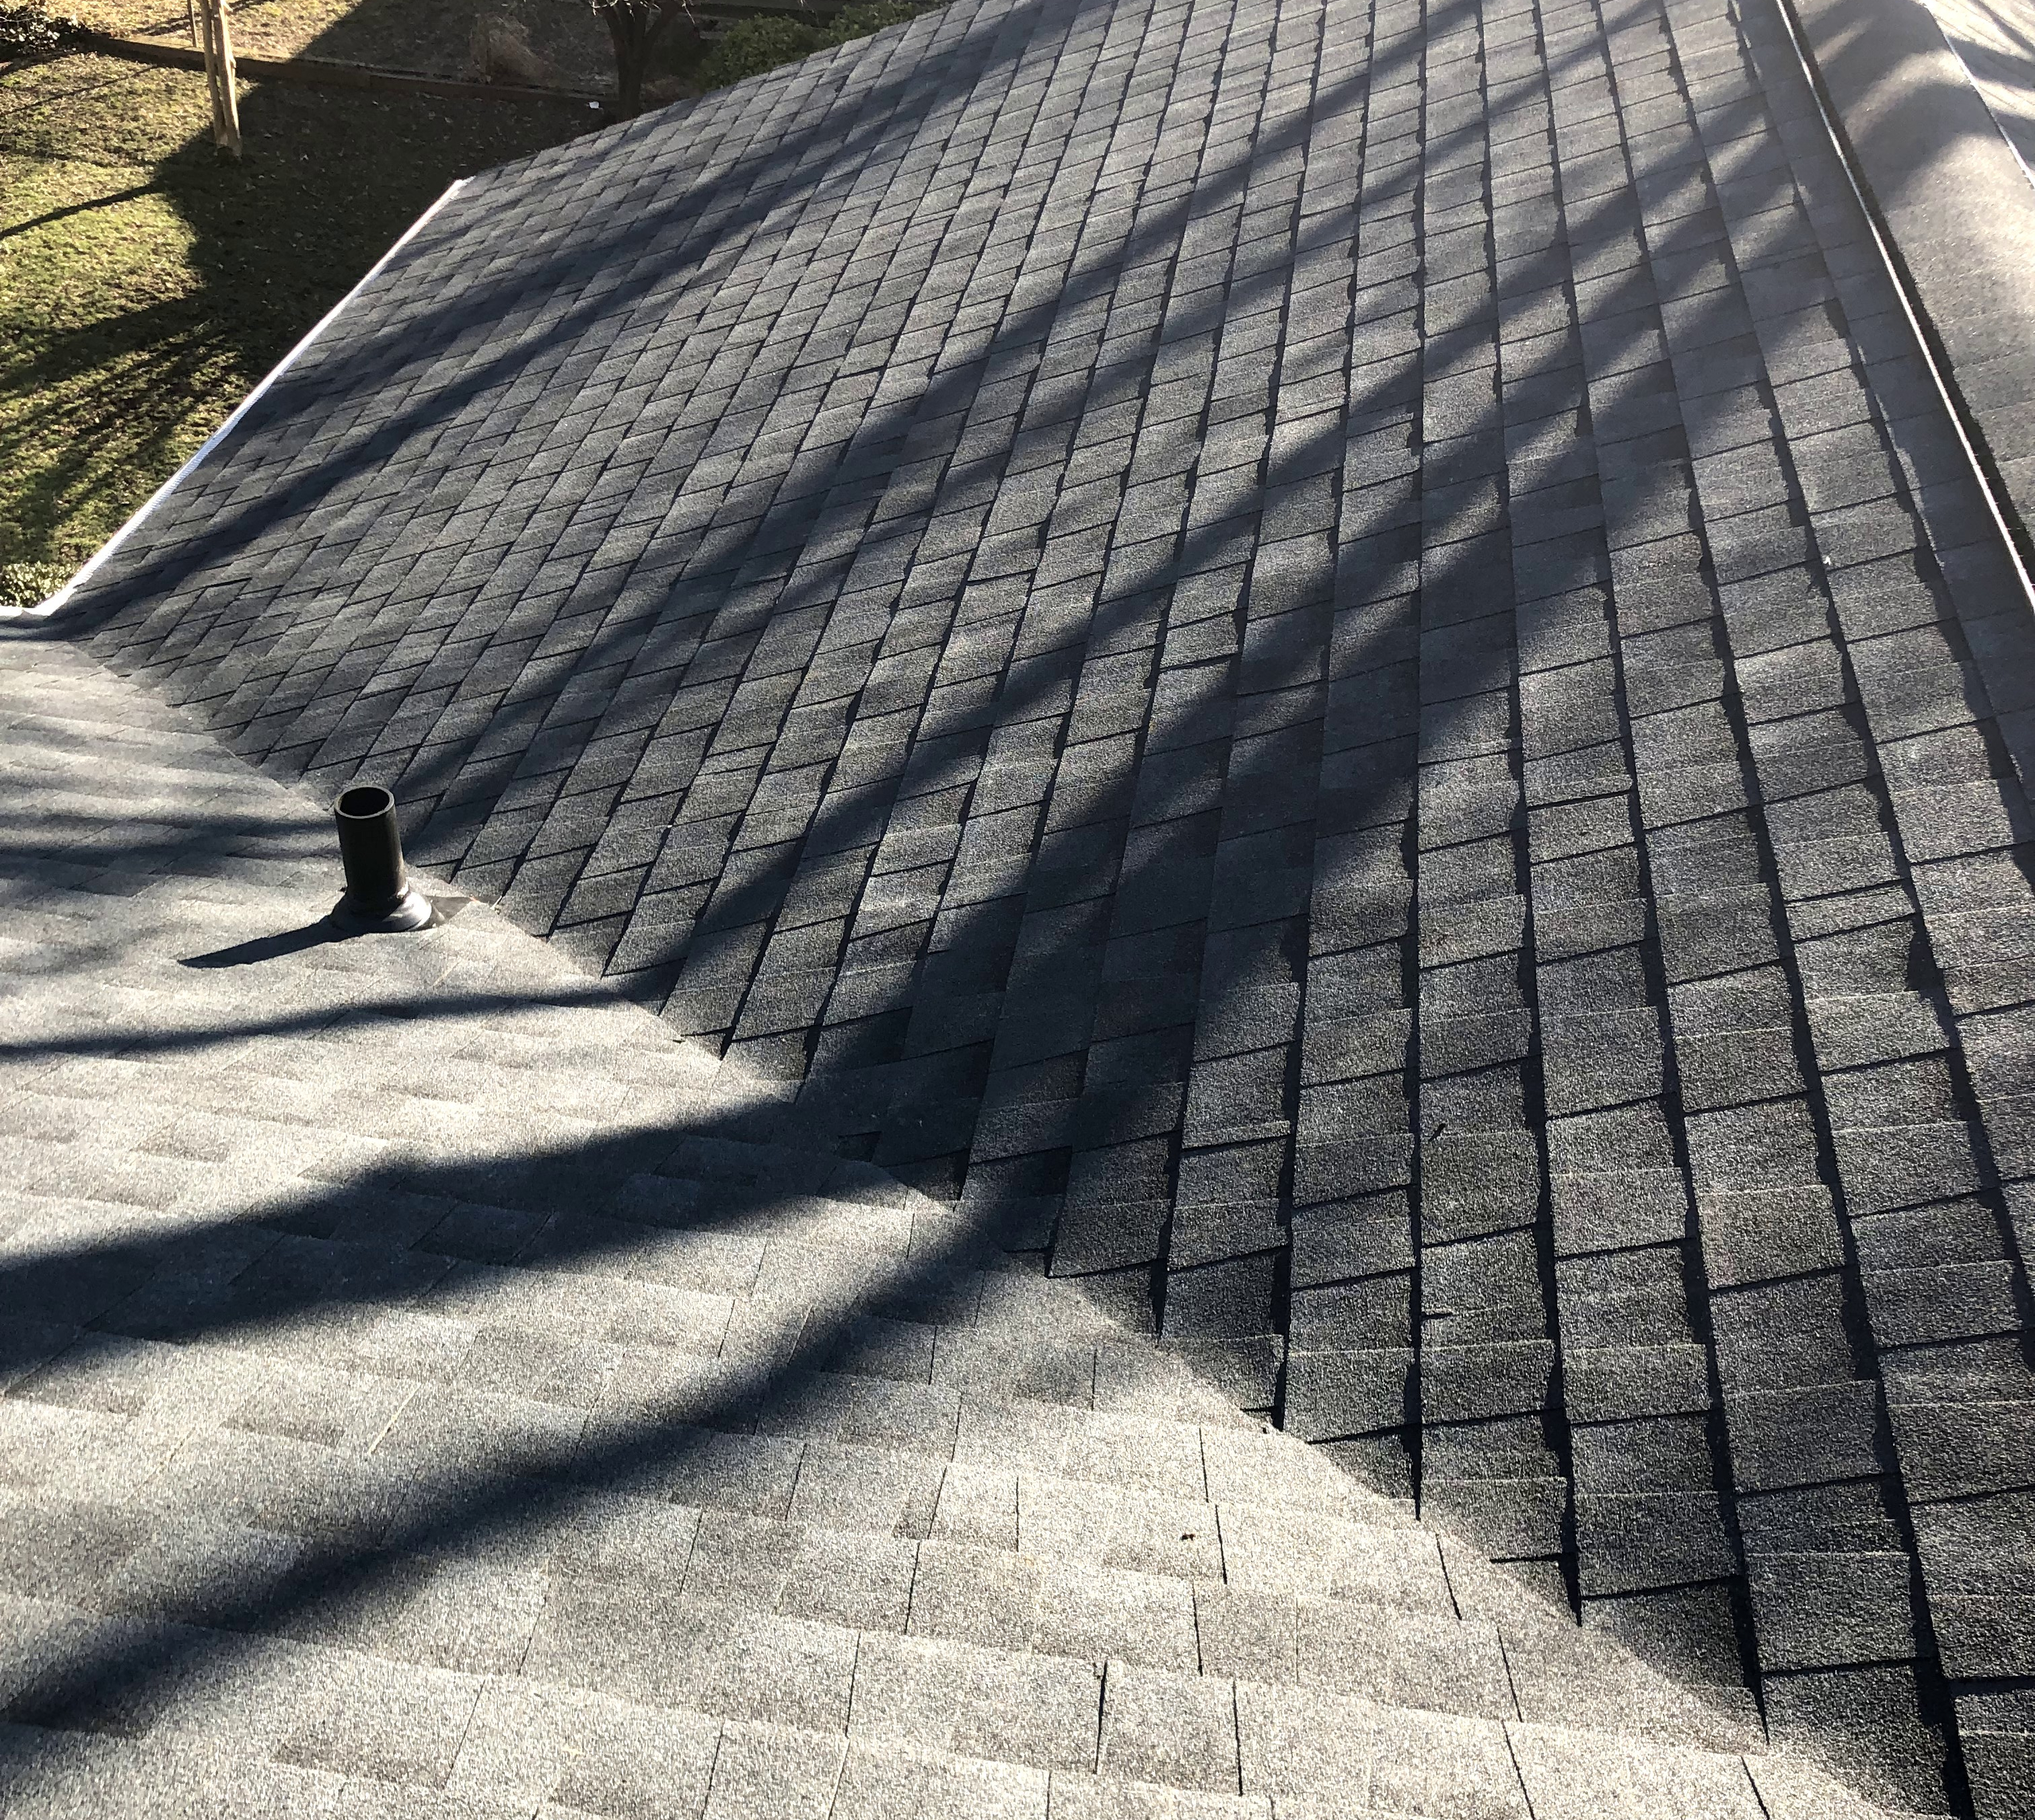 Arden on the Bay Roofers Repair and Replace